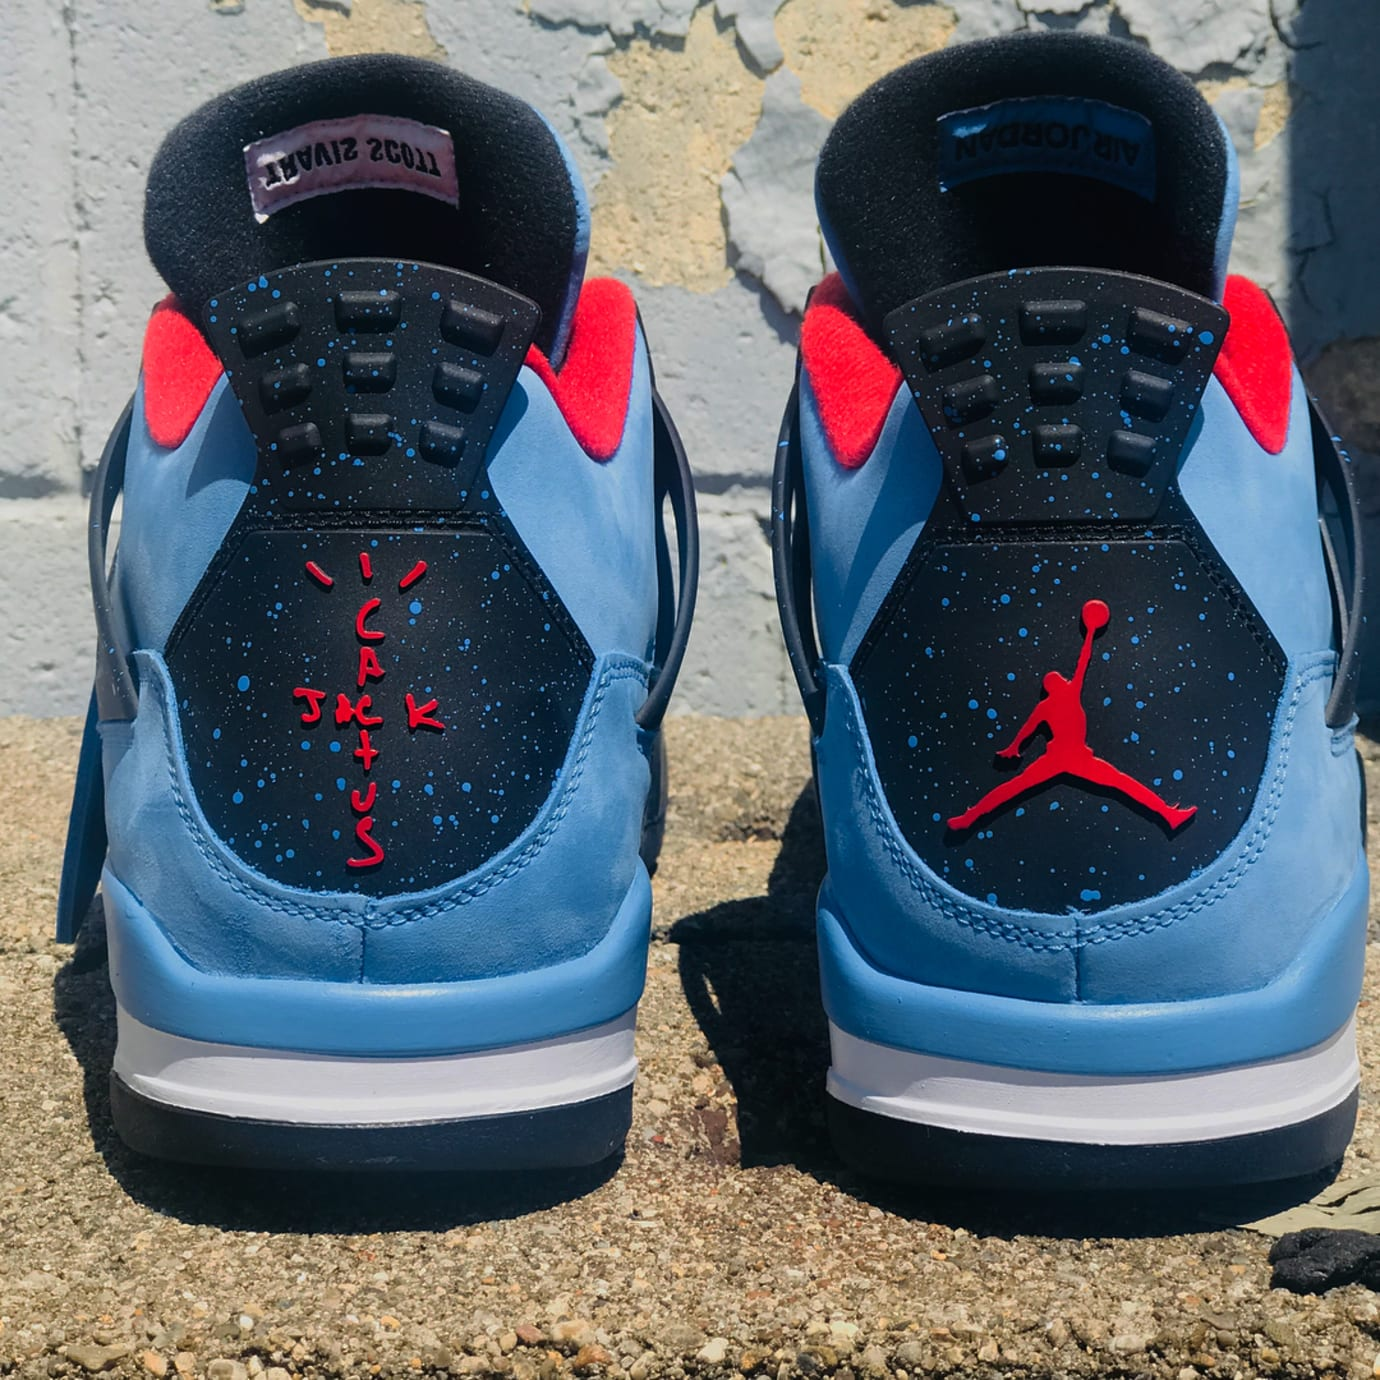 sale retailer 26244 5f61b Travis Scott x Air Jordan 4 Oiler Release Date 308497-406 Beauty Heel